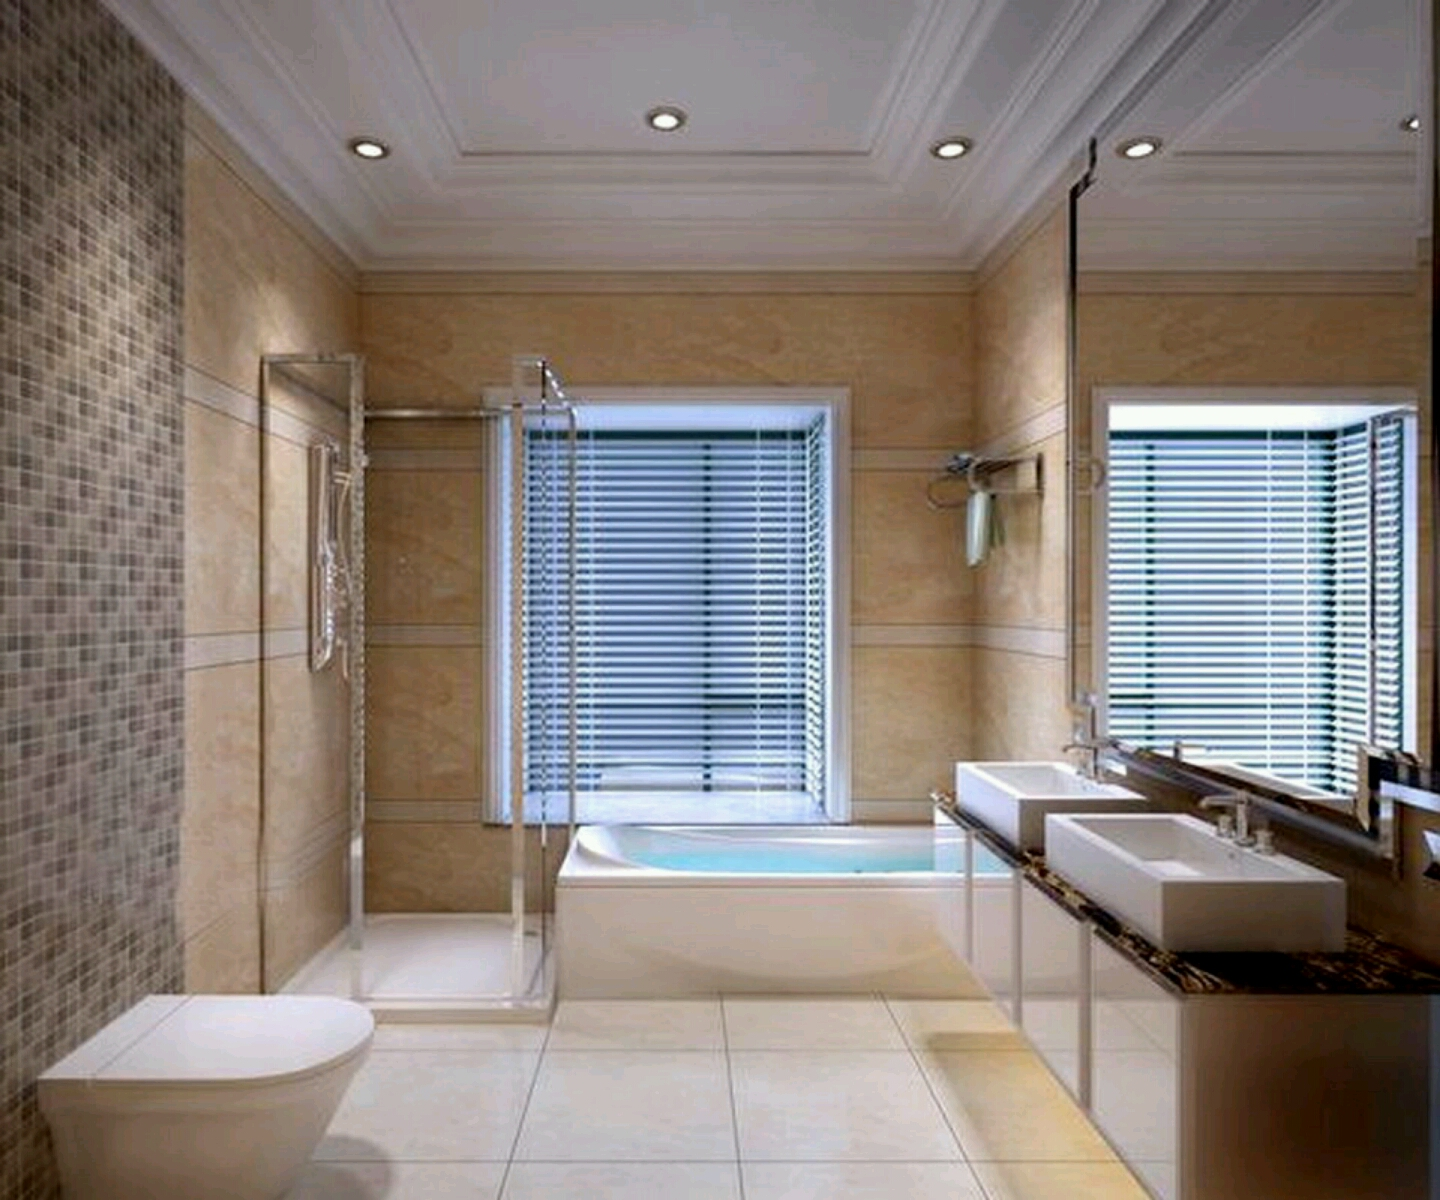 Modern bathrooms best designs ideas.